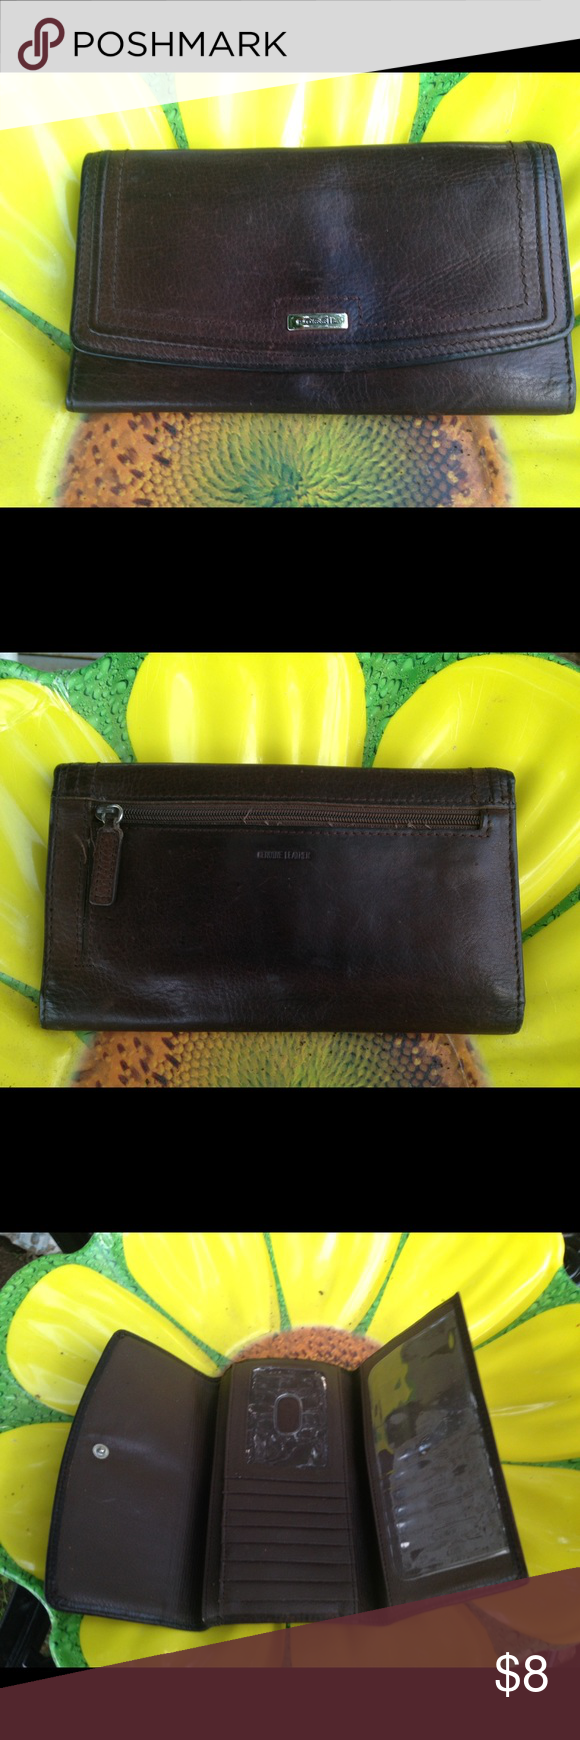 Fossil Brown Wallet Normal wear the corners a little wear. Fossil Bags Wallets